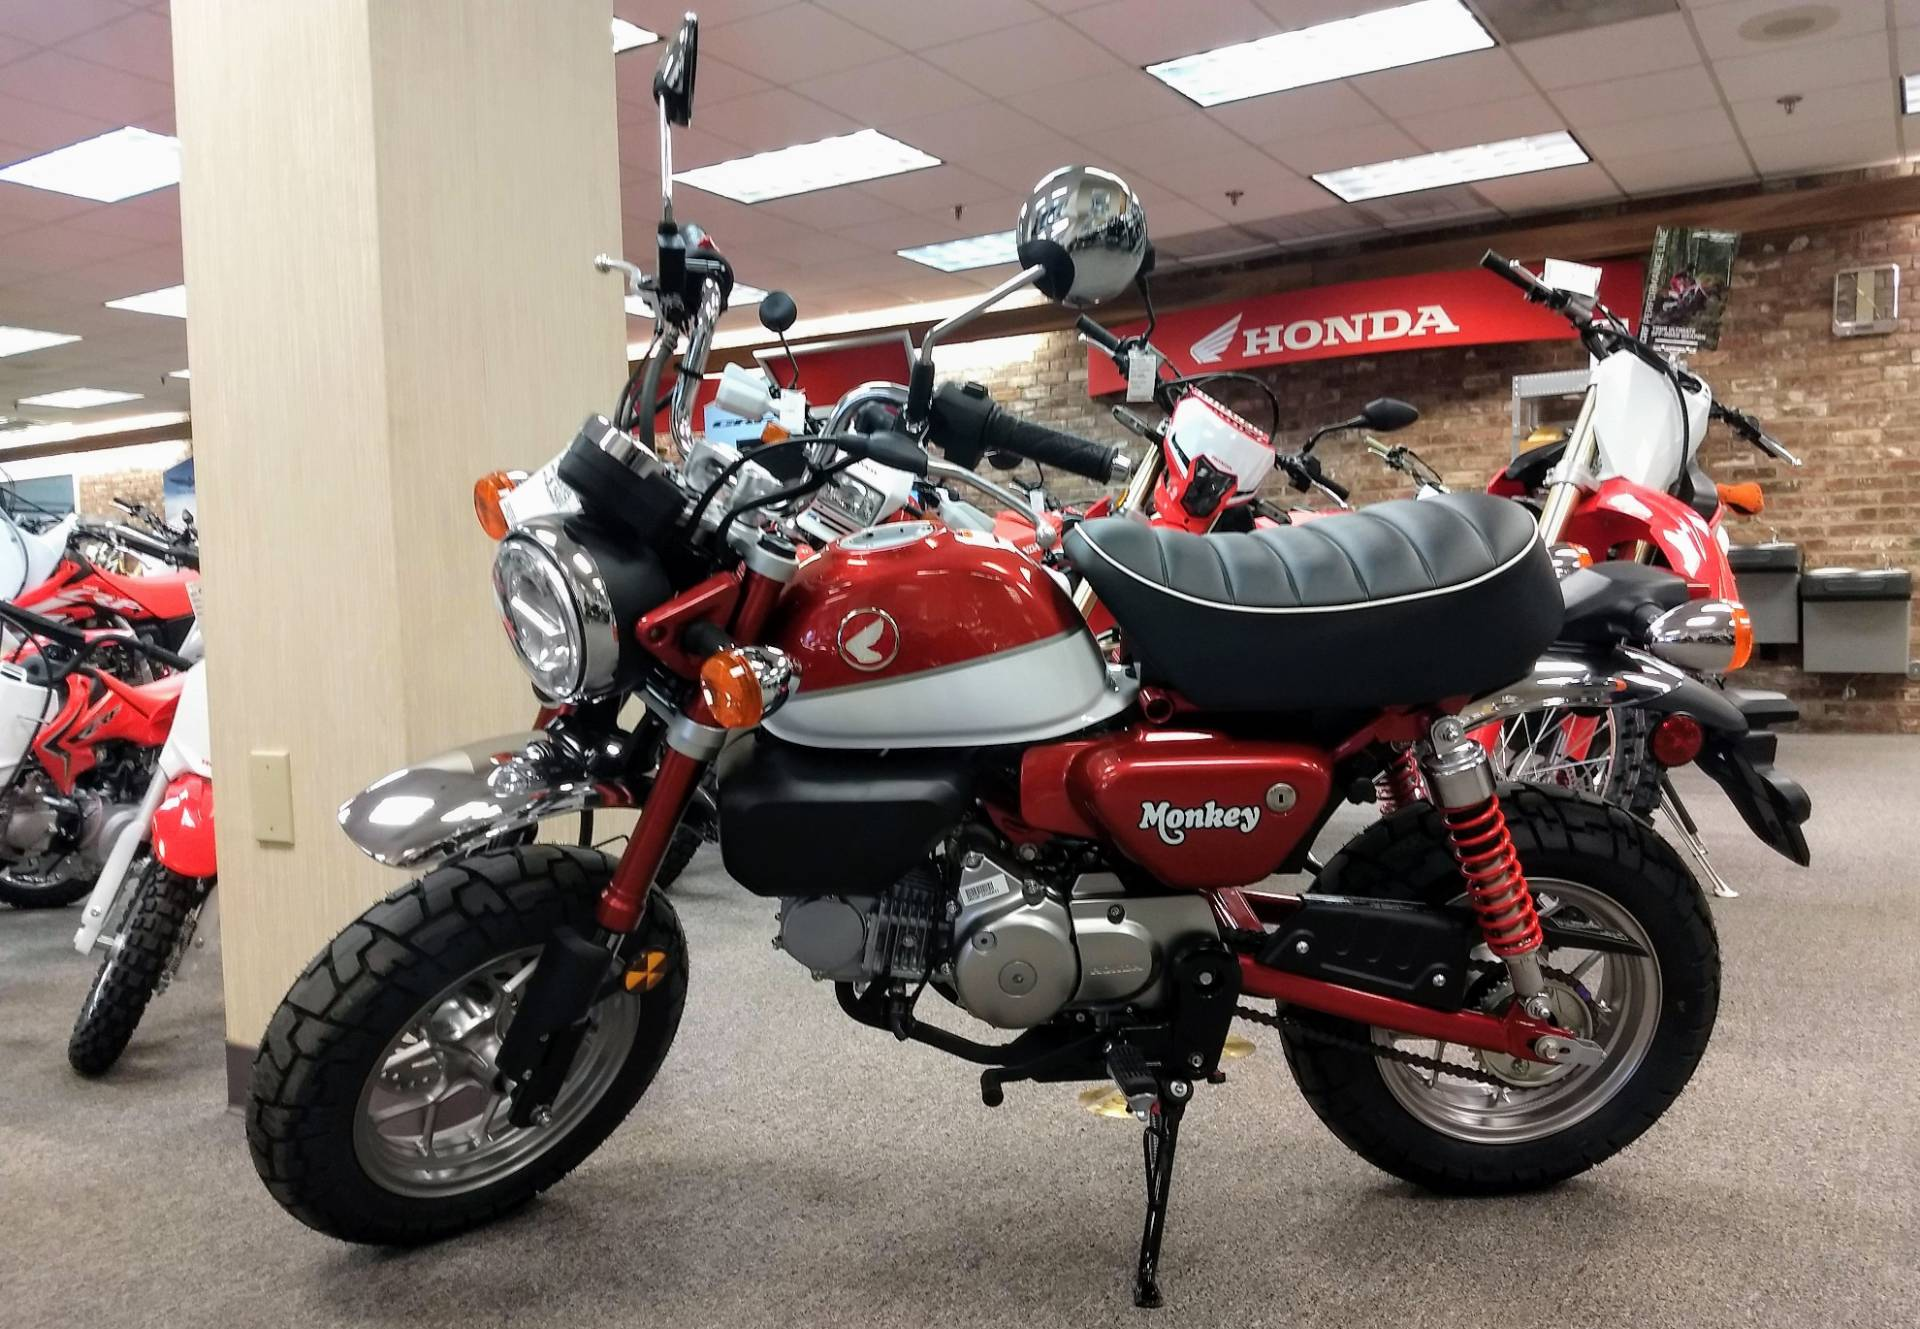 New 2019 Honda Monkey Motorcycles In Statesville Nc Stock Number